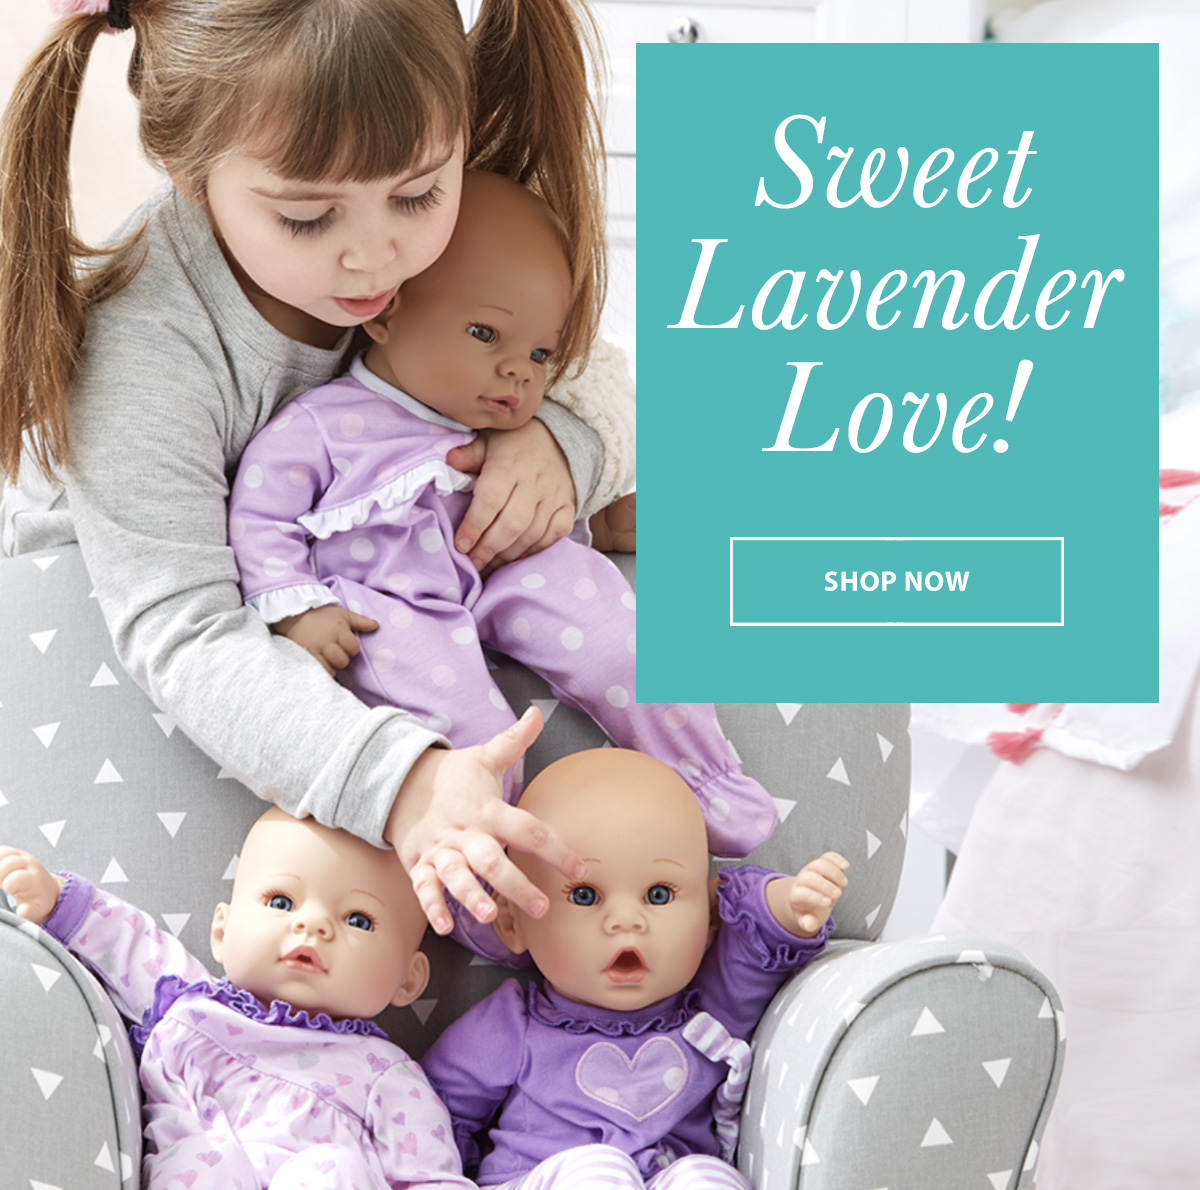 Click to shop for Lavender Love dolls